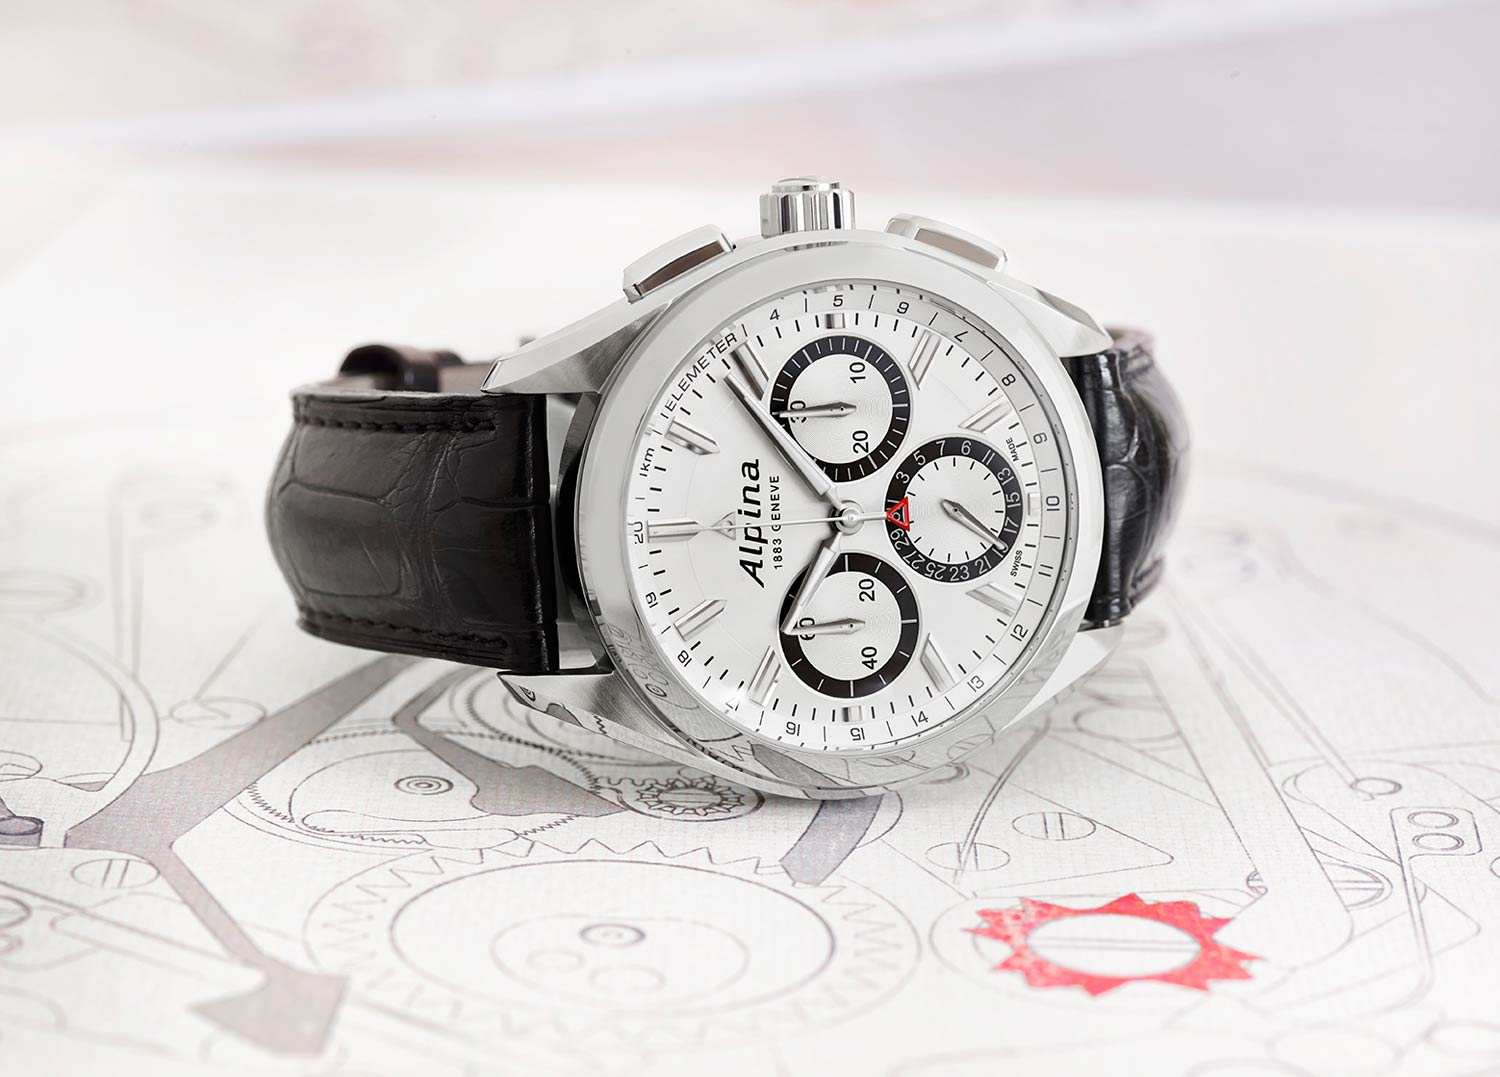 Swiss watch brand Aplina unveil the Alpiner 4 Flyback Chronograph at Baselworld